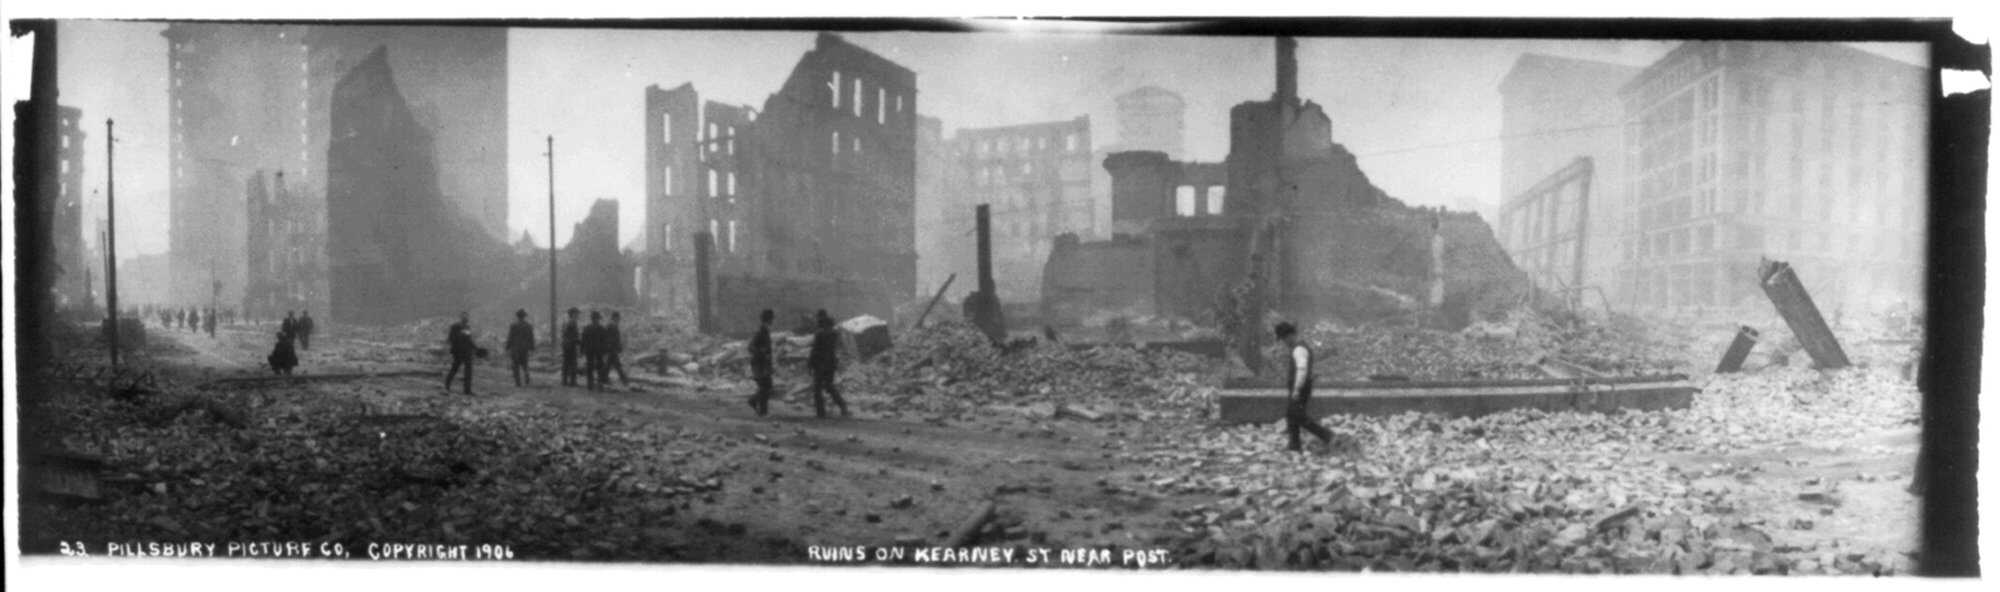 Ansel San Francisco - Earthquake & fire, 1906 %22Ruins on Kearney St. near Post 1906 LOC.jpg